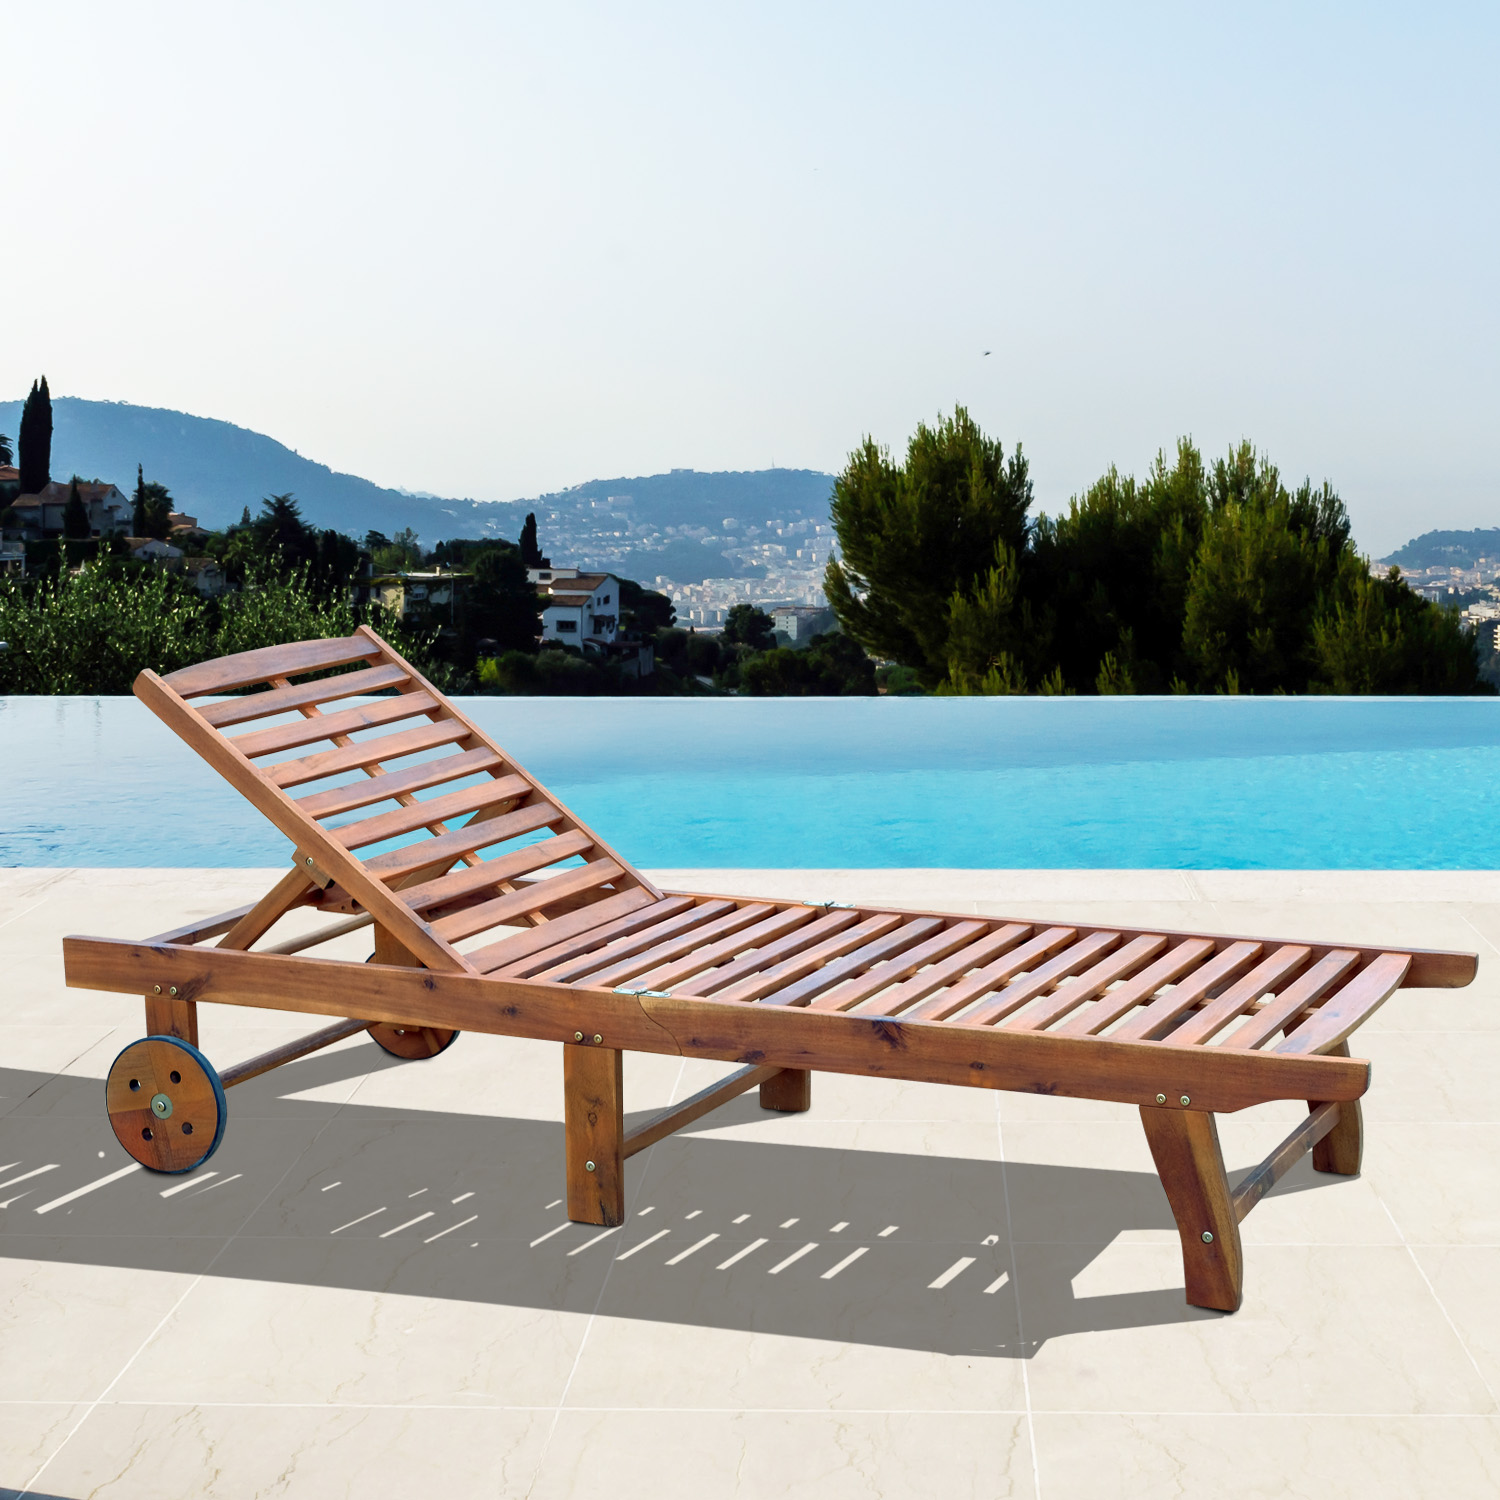 Teak Chaise Lounge Chairs Details About Outsunny Wooden Outdoor Folding Chaise Lounge Chair Recliner Poolside